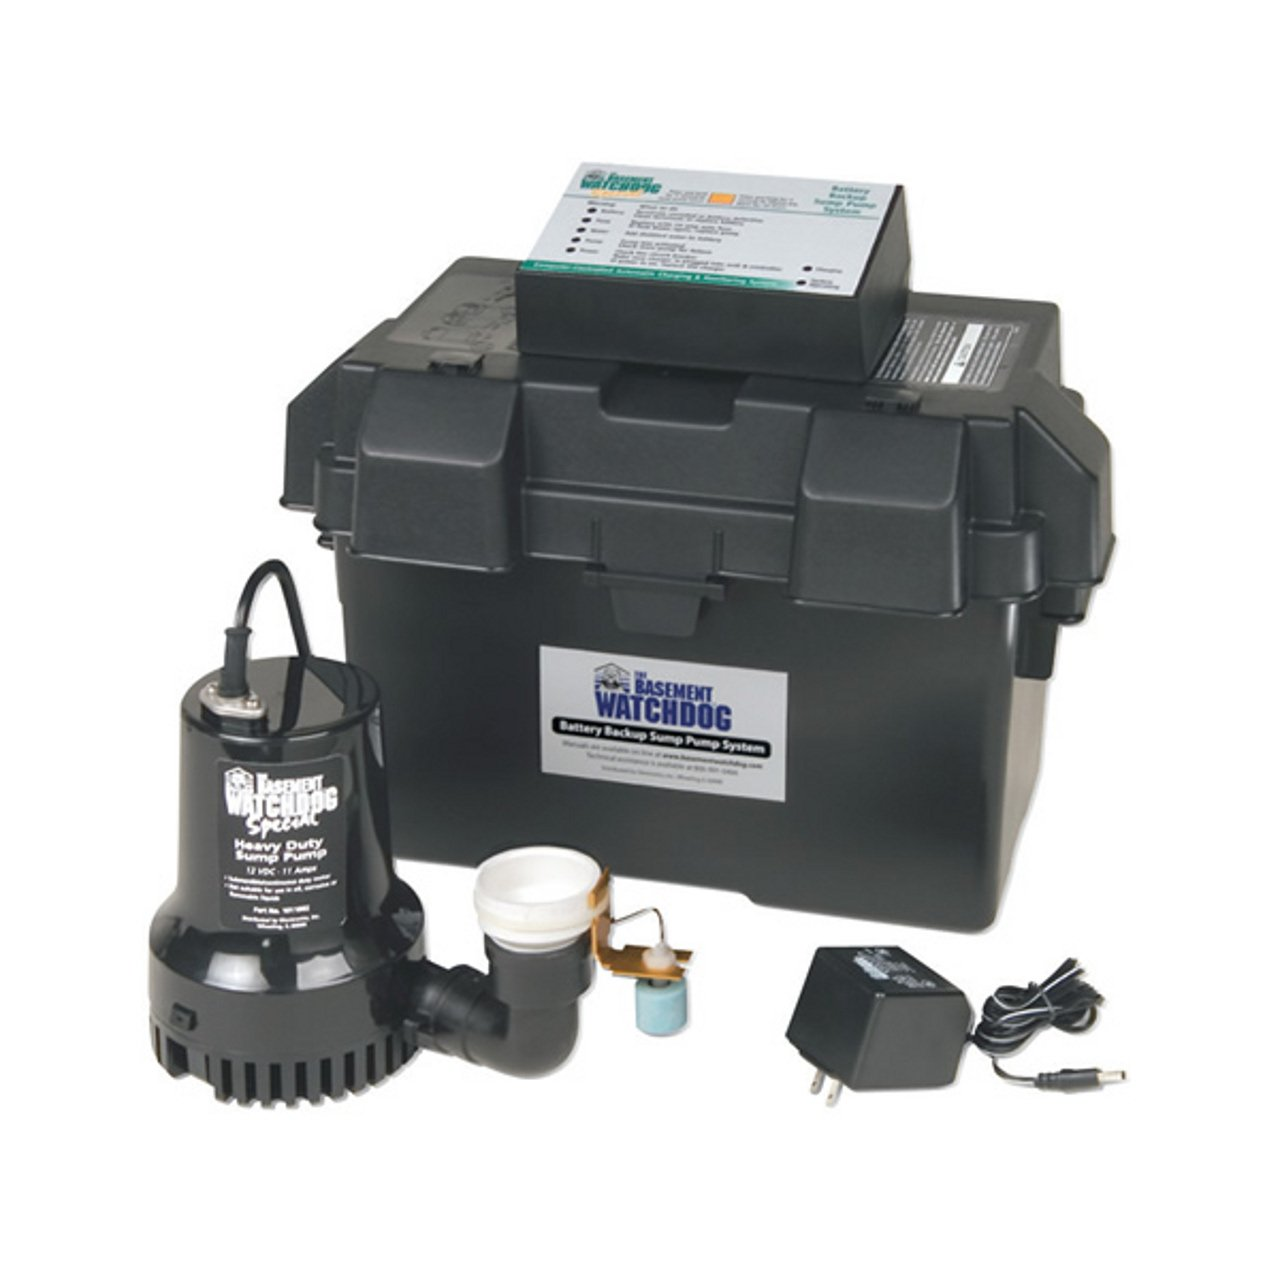 basement watchdog bwsp gallons per hour basement watchdog special backup sump pump battery backup sump pump amazoncom